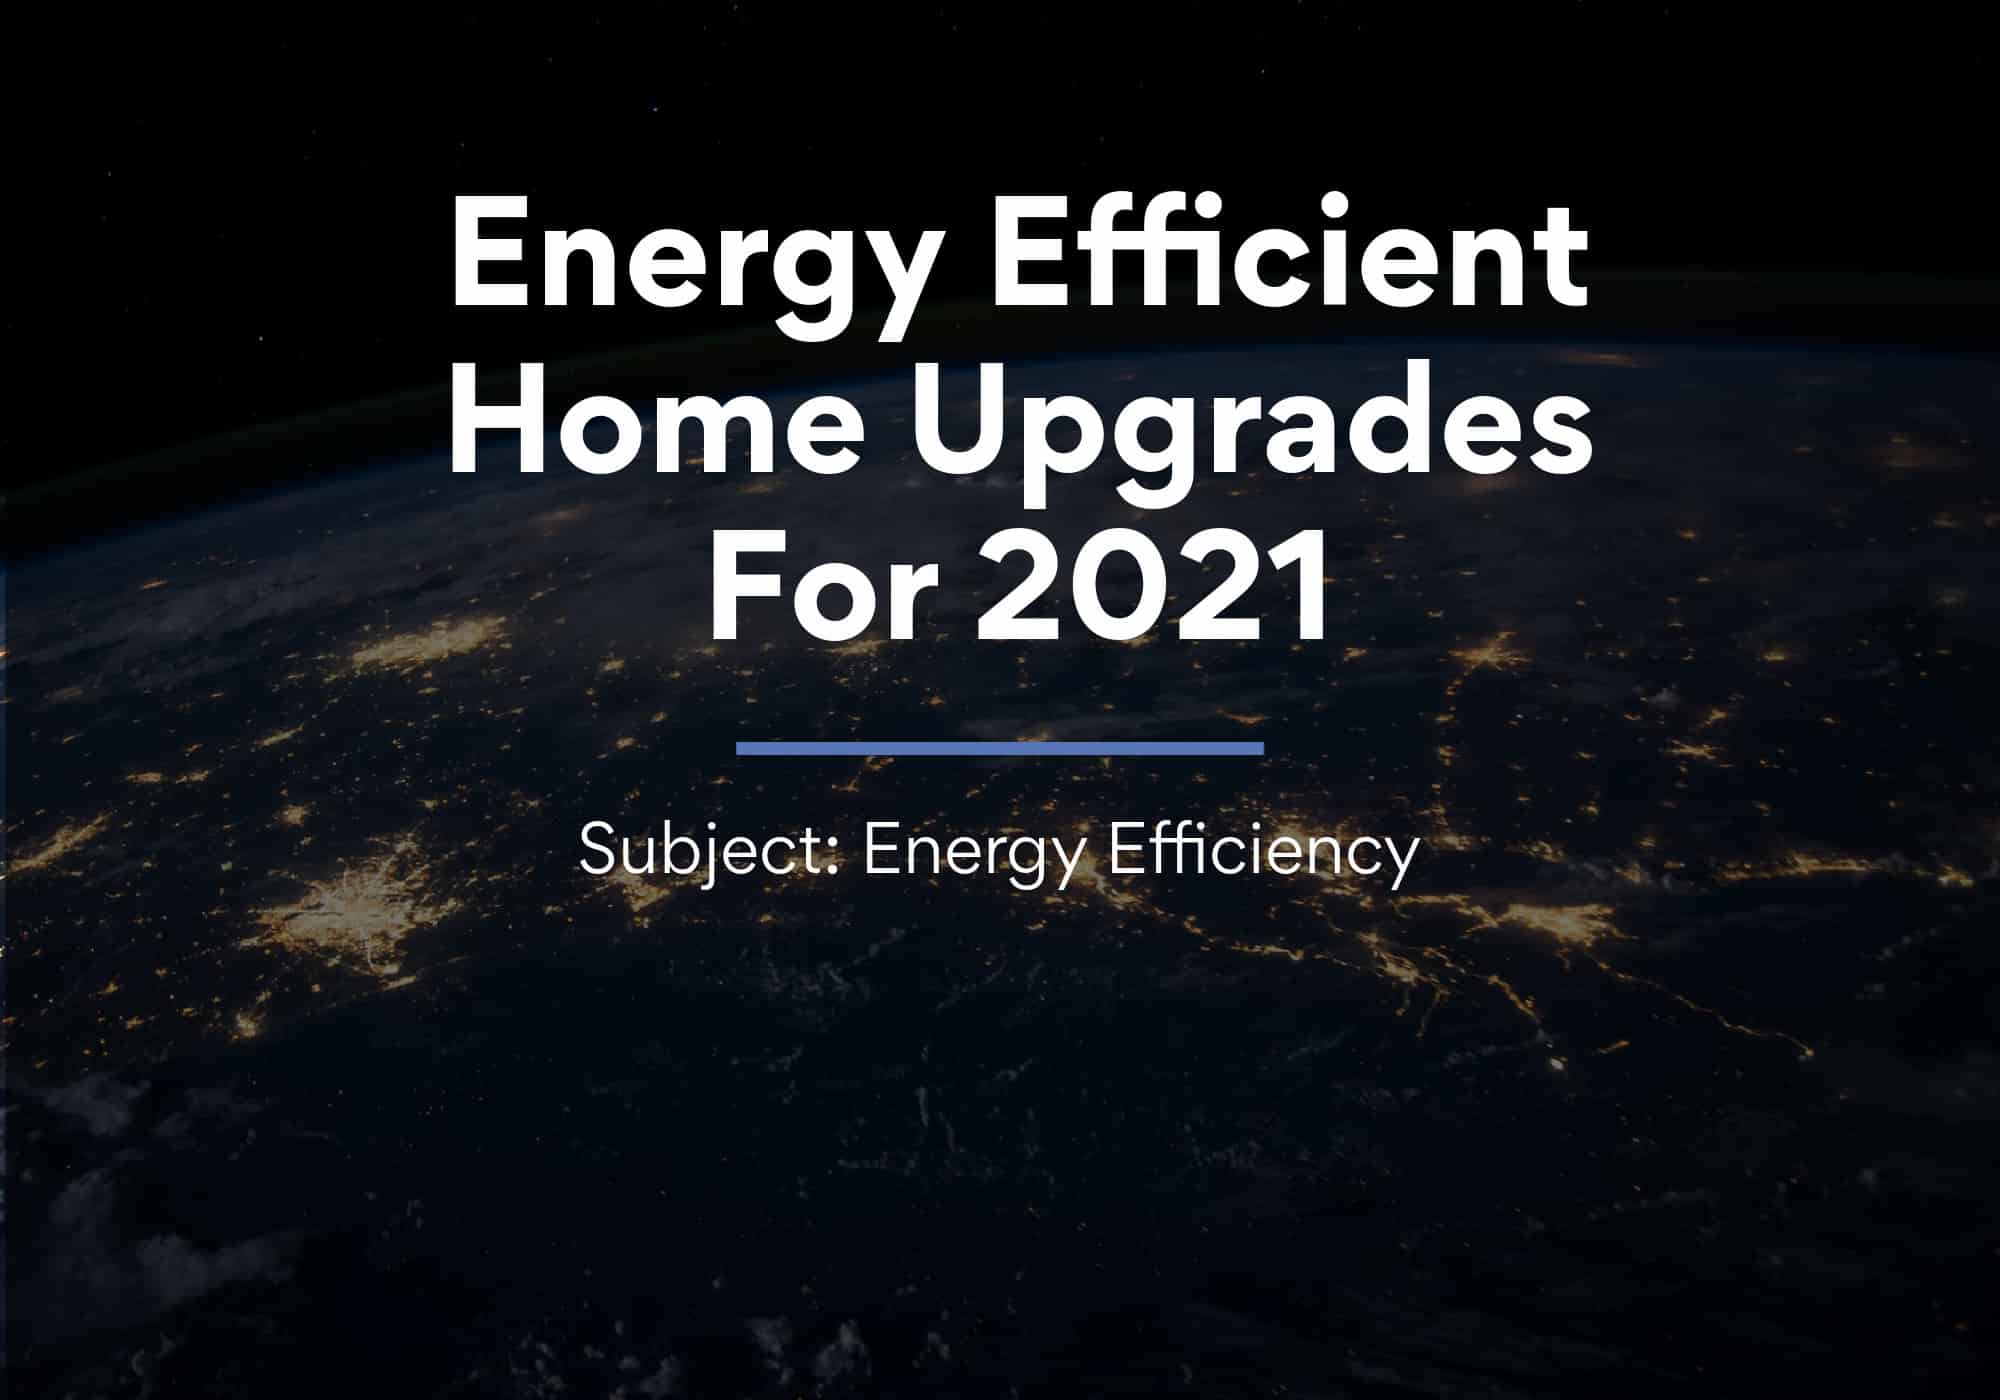 Energy Efficient Home Upgrades For 2021